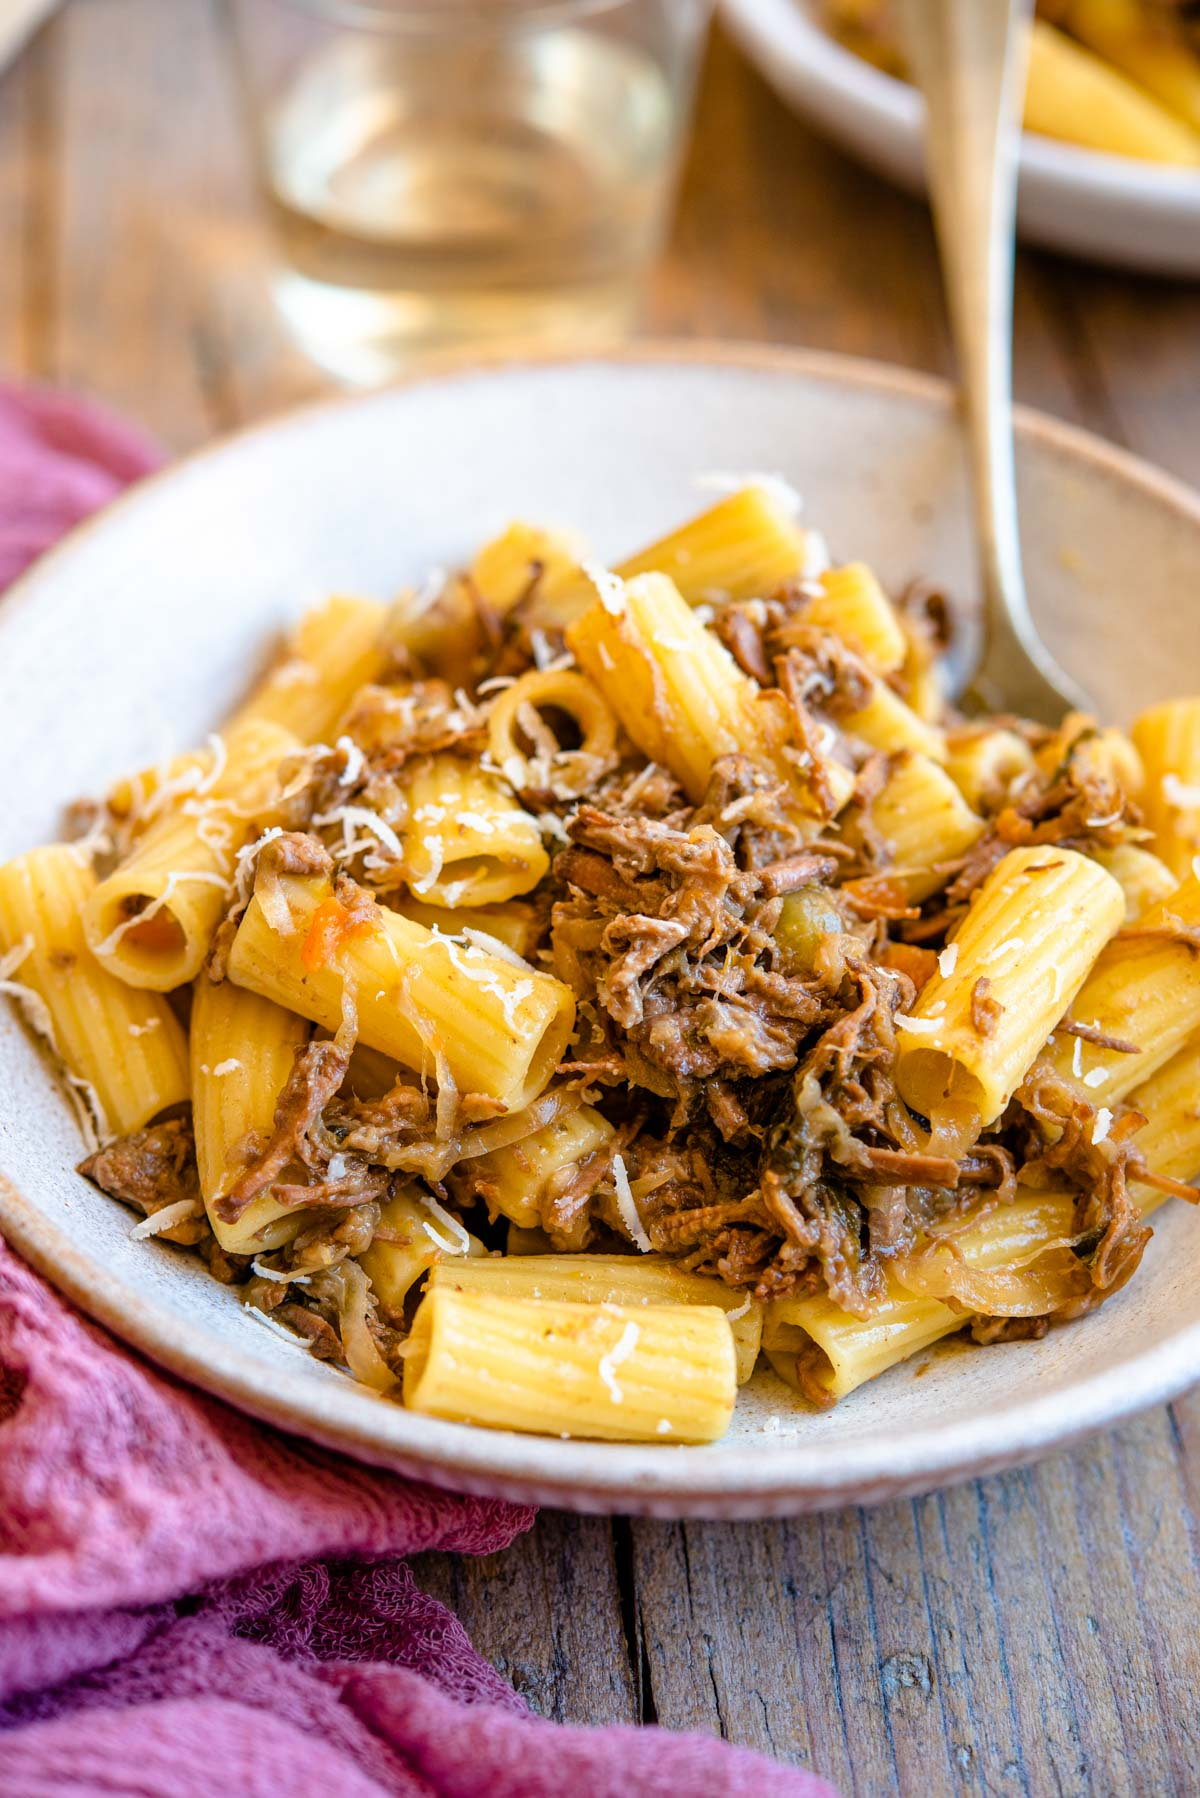 A side shot of a Neapolitan ragu tossed with rigatoni pasta in a rustic bowl